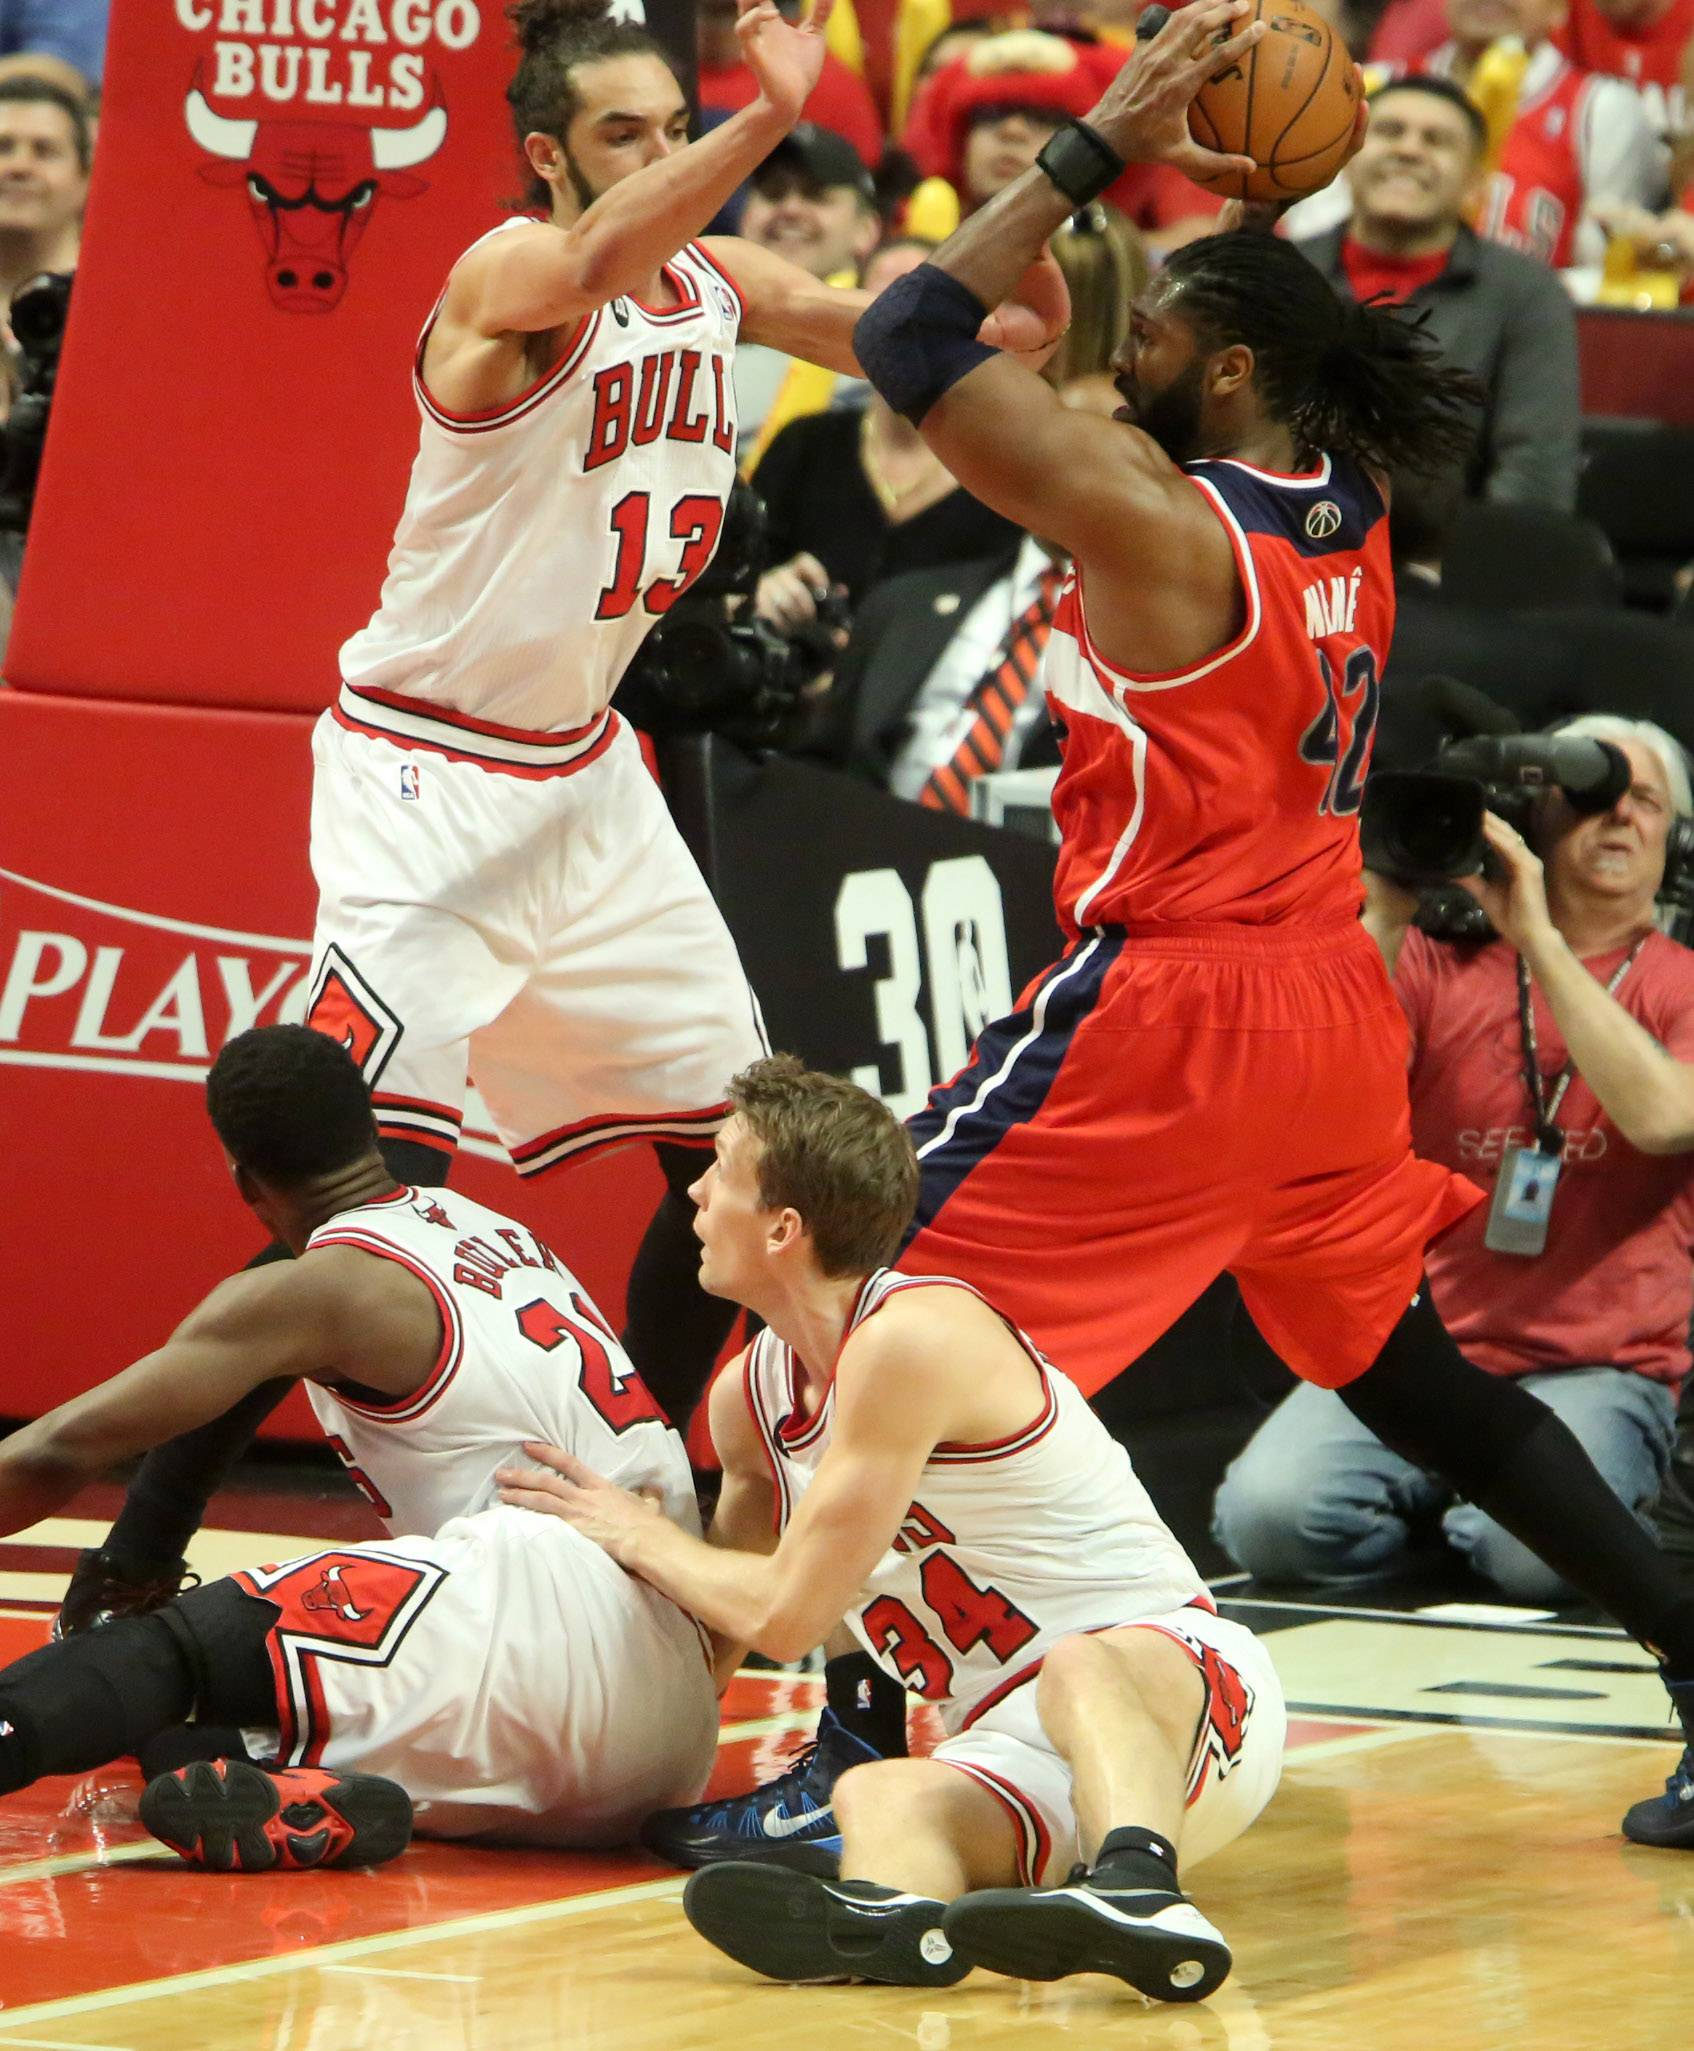 Bulls center Joakim Noah tries to block Washington Wizards forward Nene Hilario from passing in the second half of game 1 of an Eastern Conference first-round NBA playoff series on Sunday in Chicago.